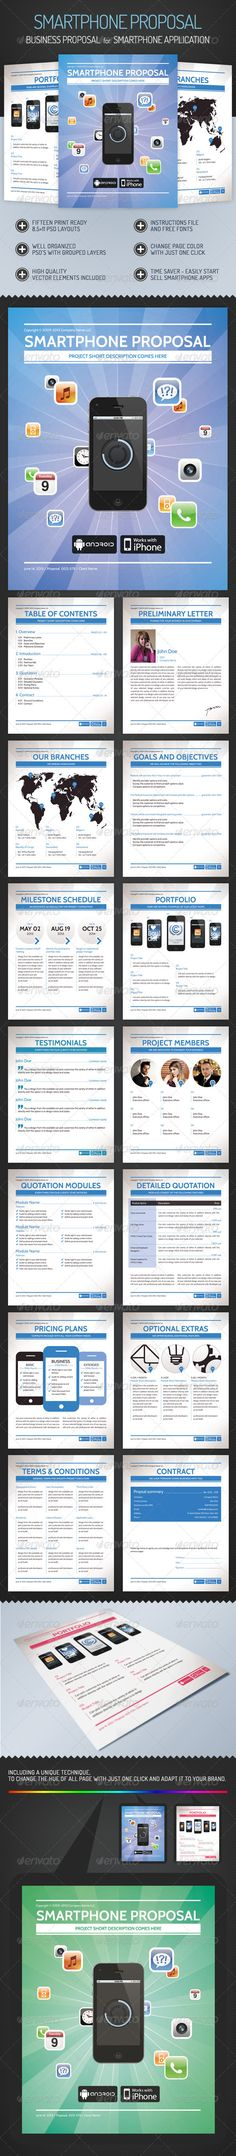 Business Proposal  Proposals Stationery And Business